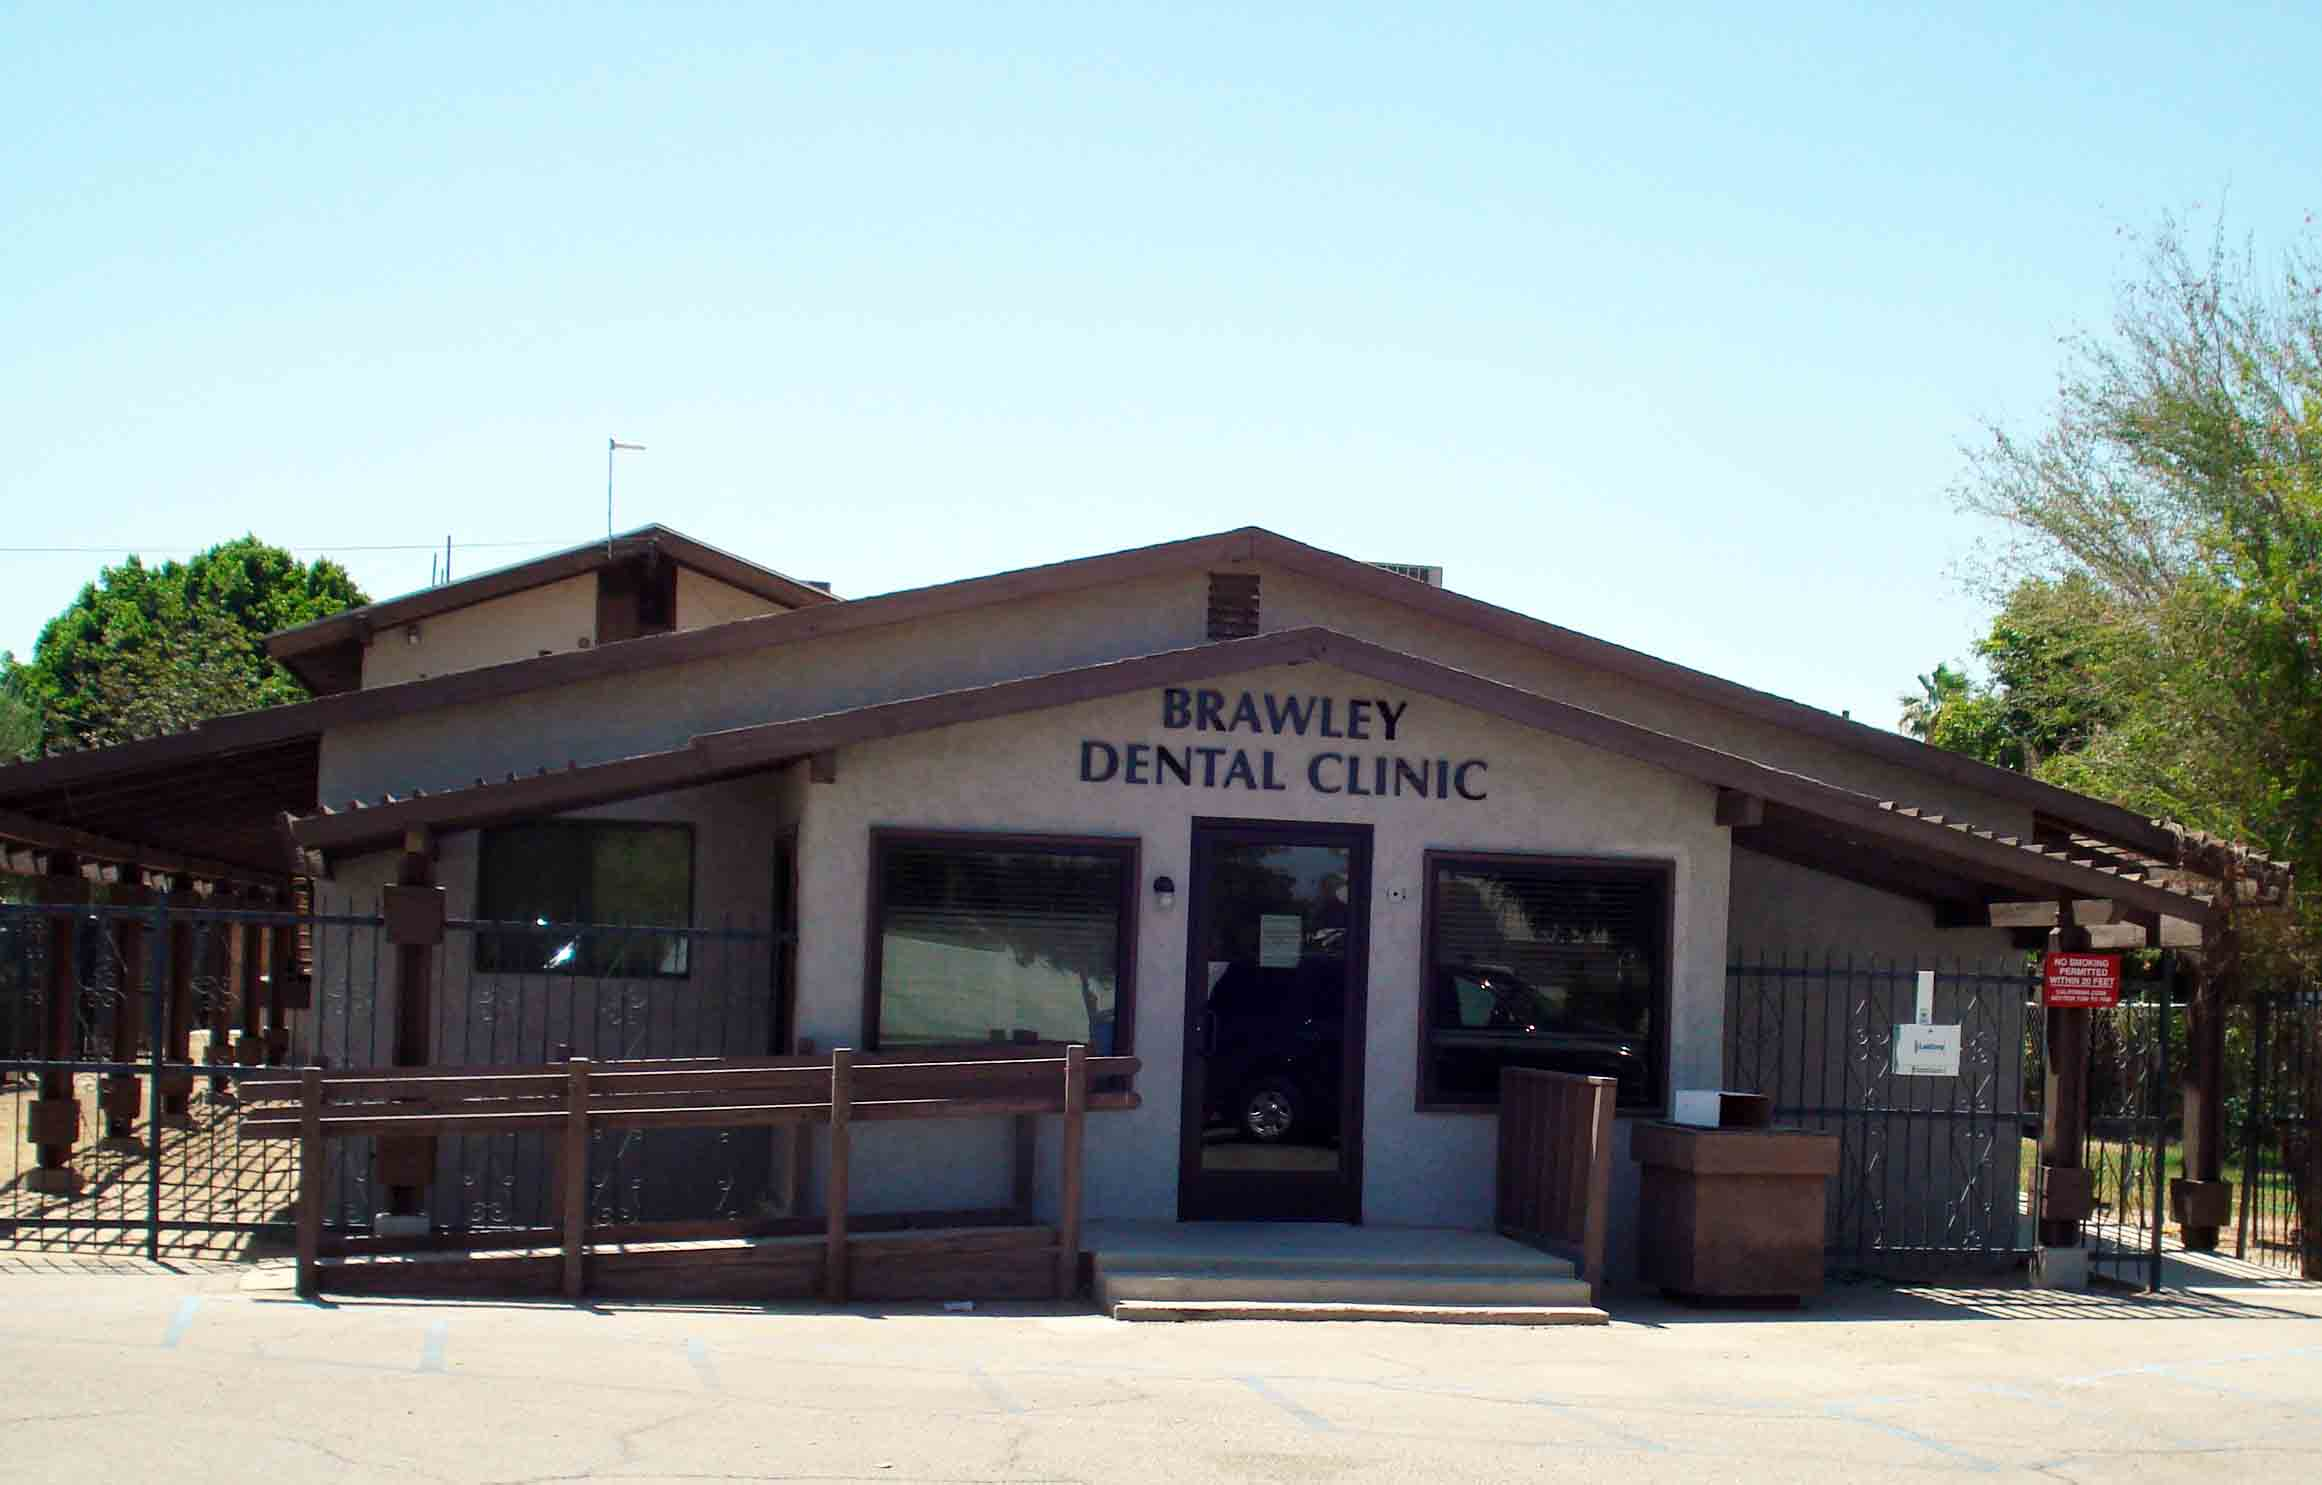 Brawley Dental Clinic